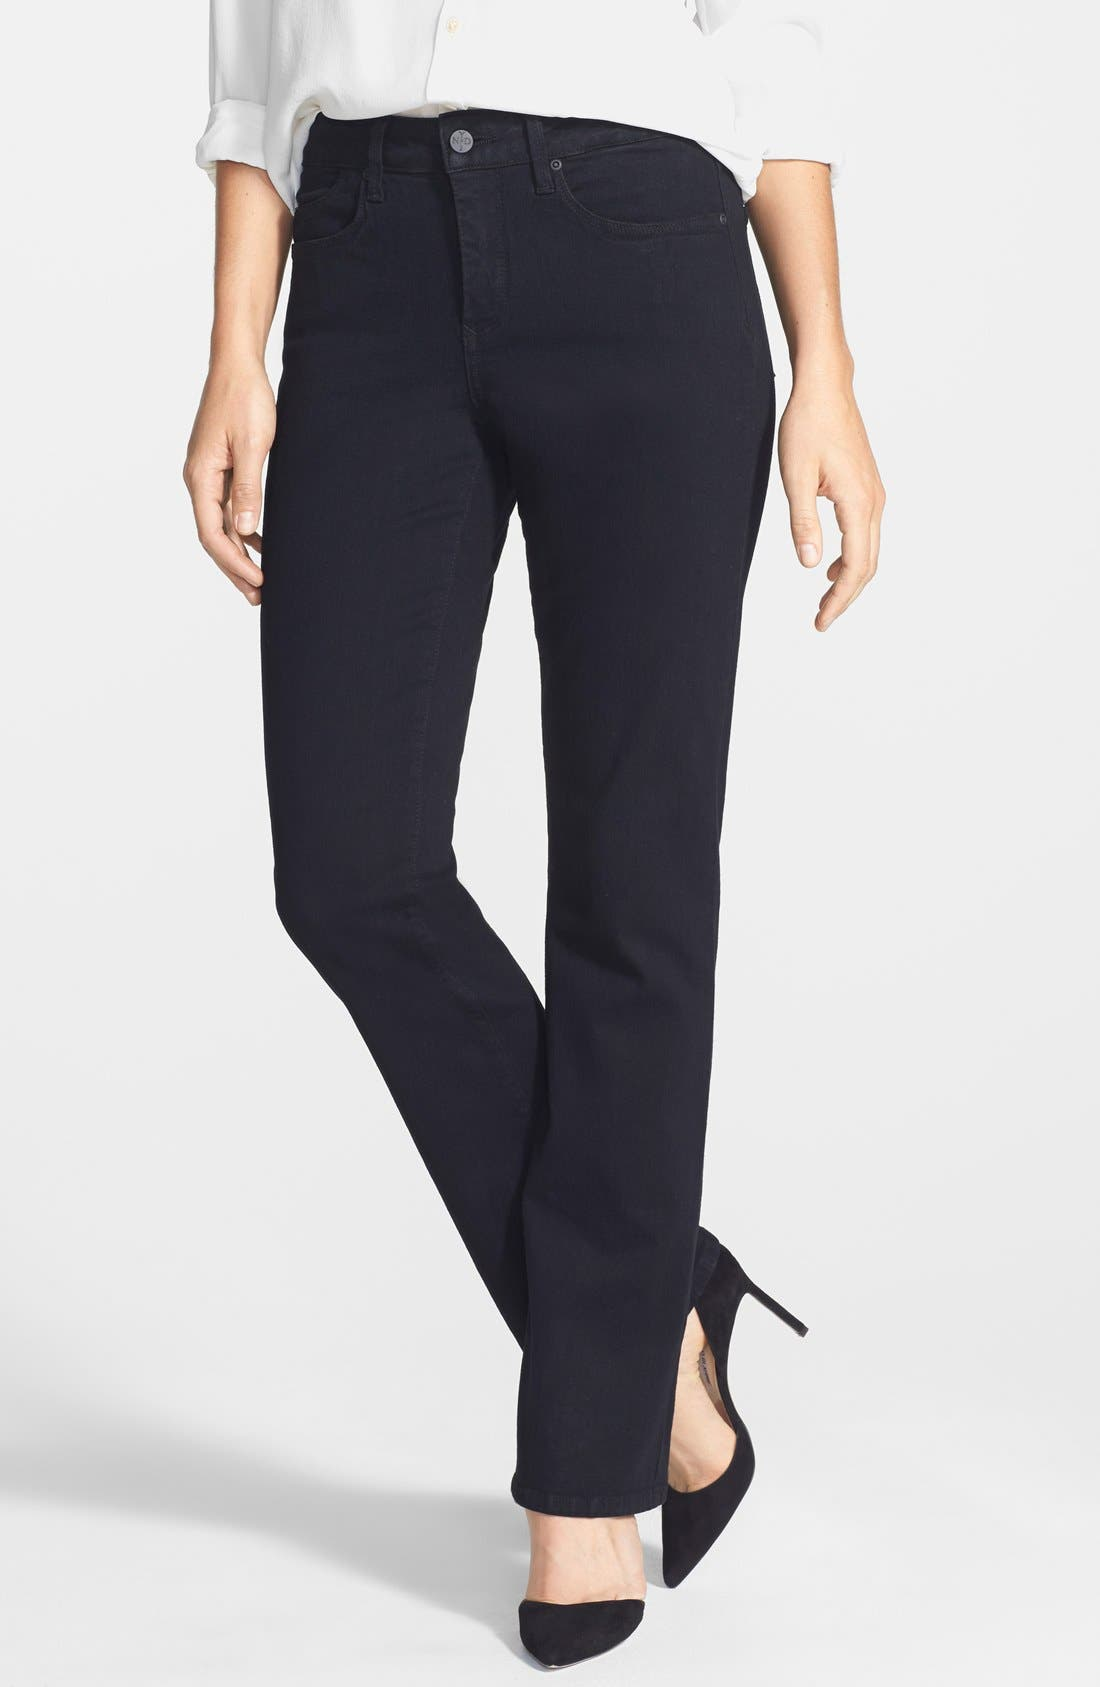 'Billie' Stretch Mini Bootcut Jeans,                         Main,                         color, BLACK